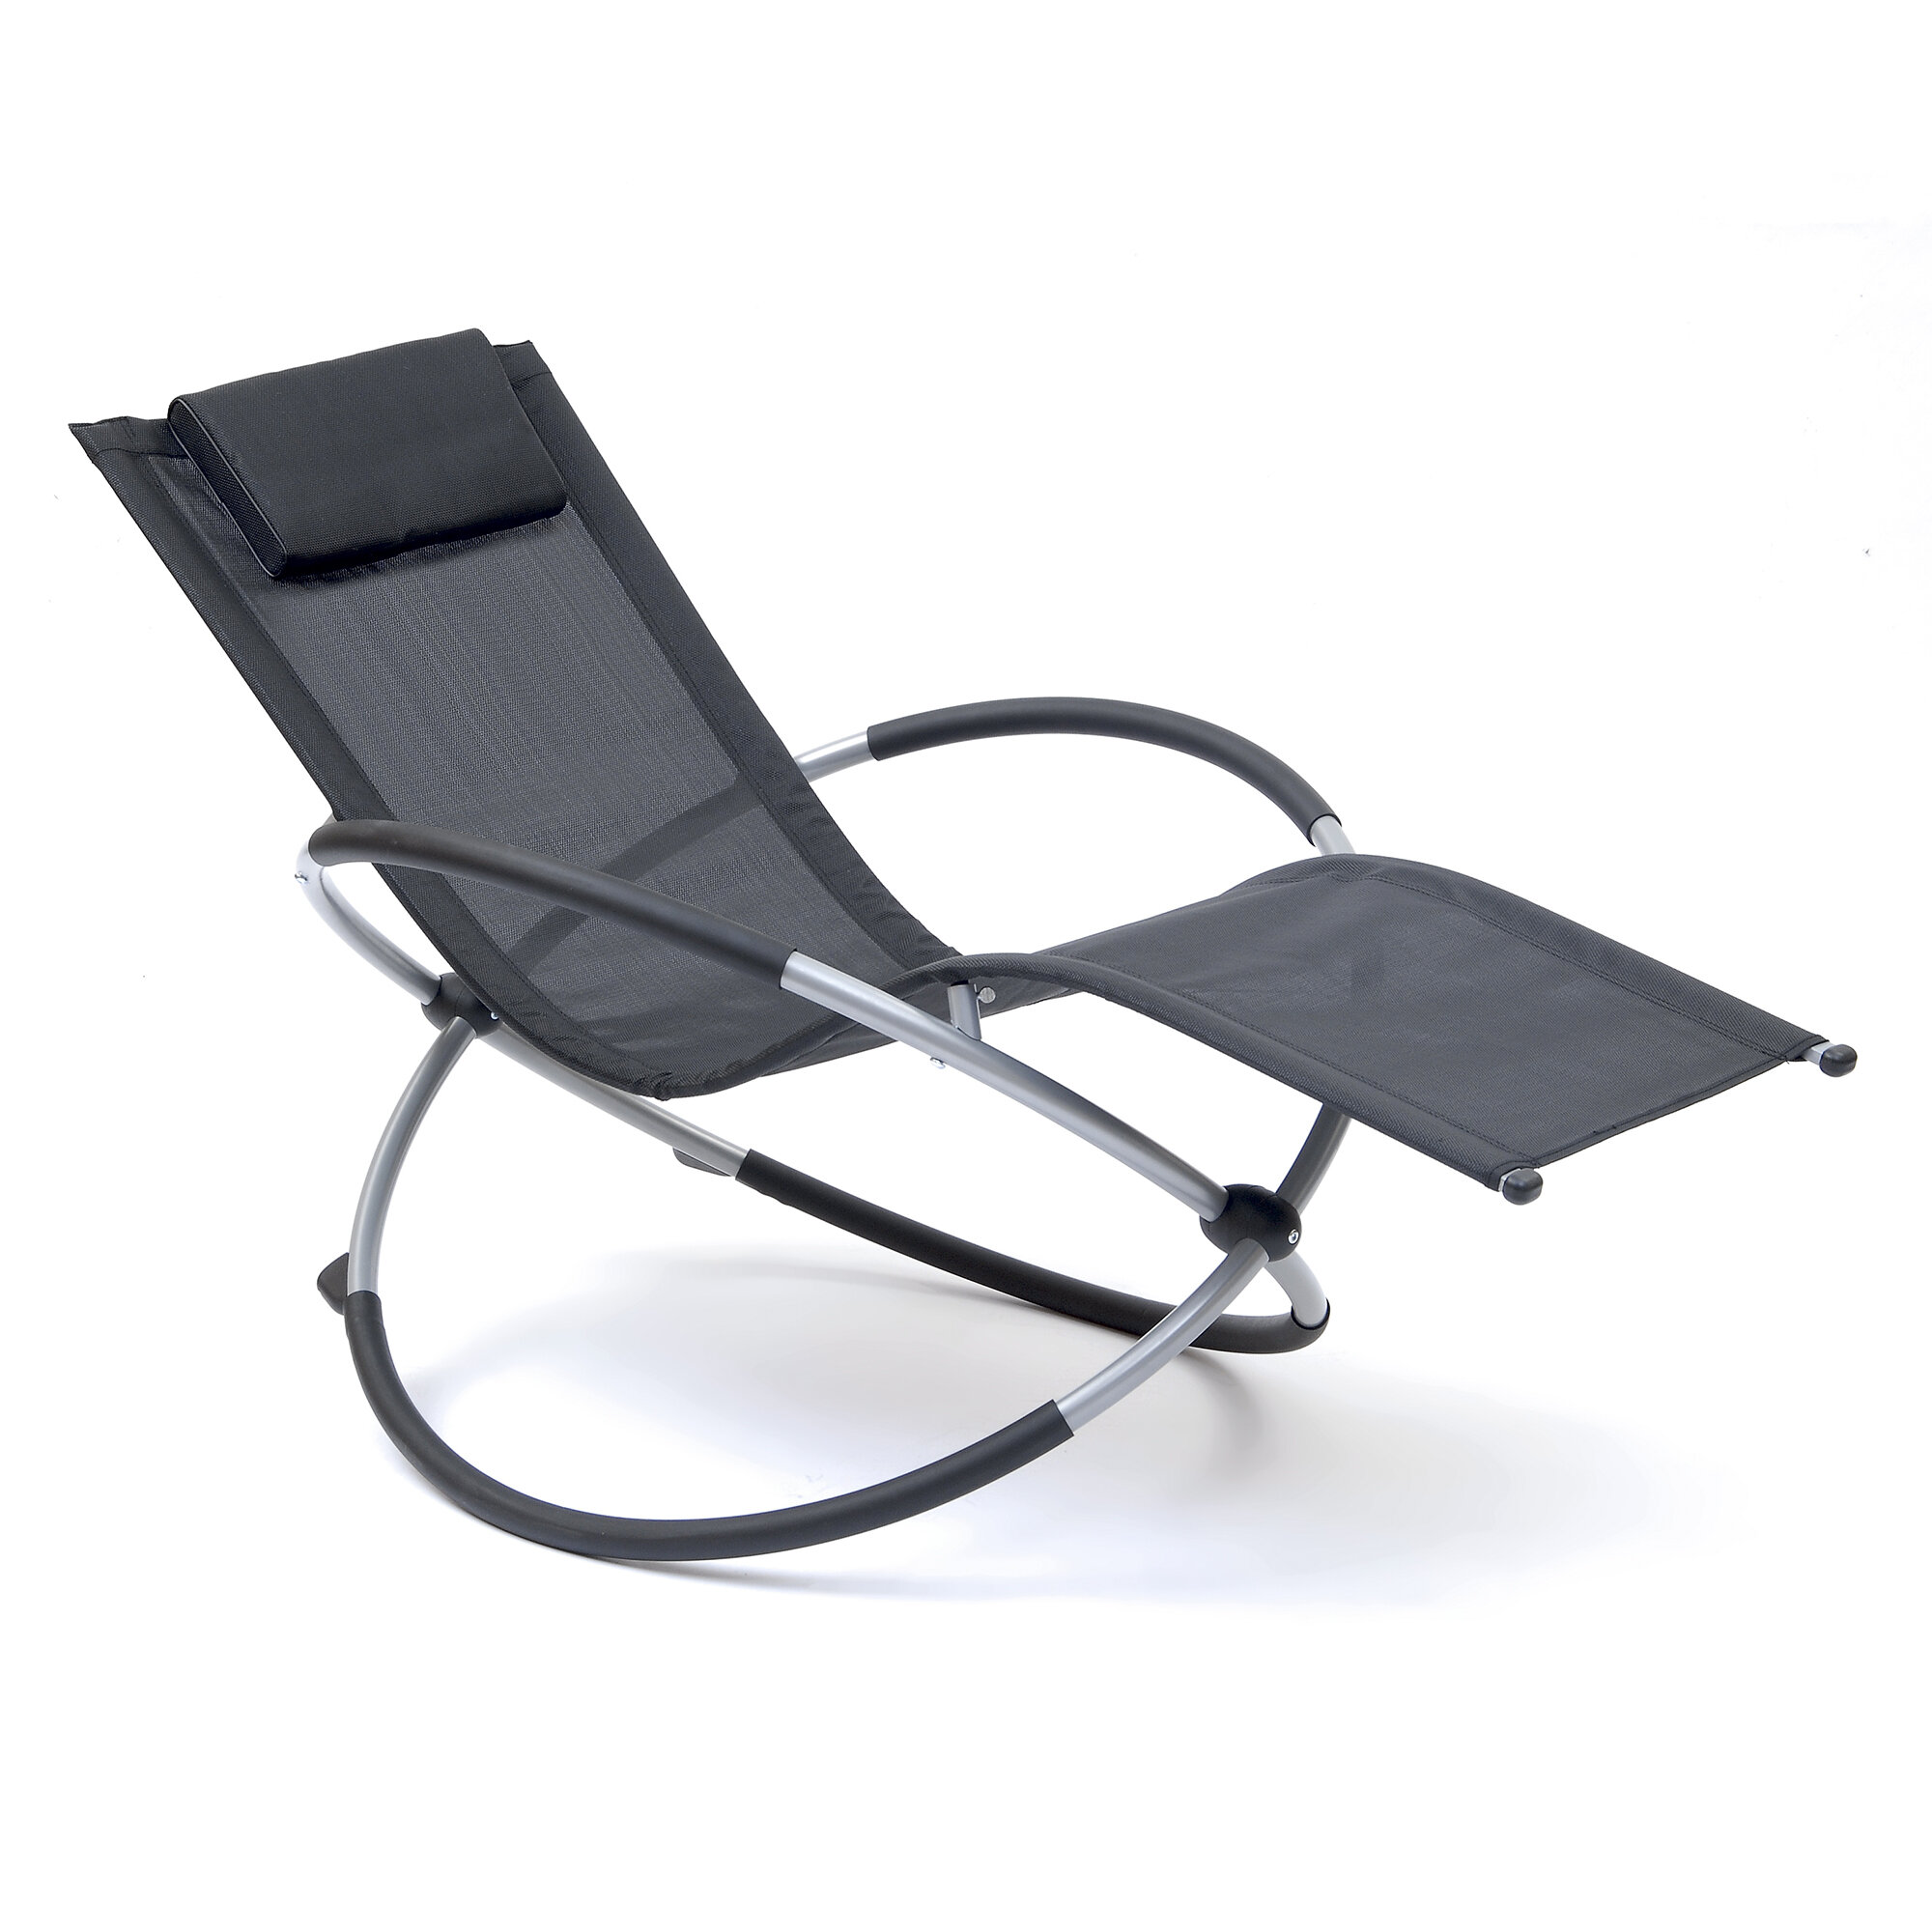 Orbit relaxer reclining zero gravity chair